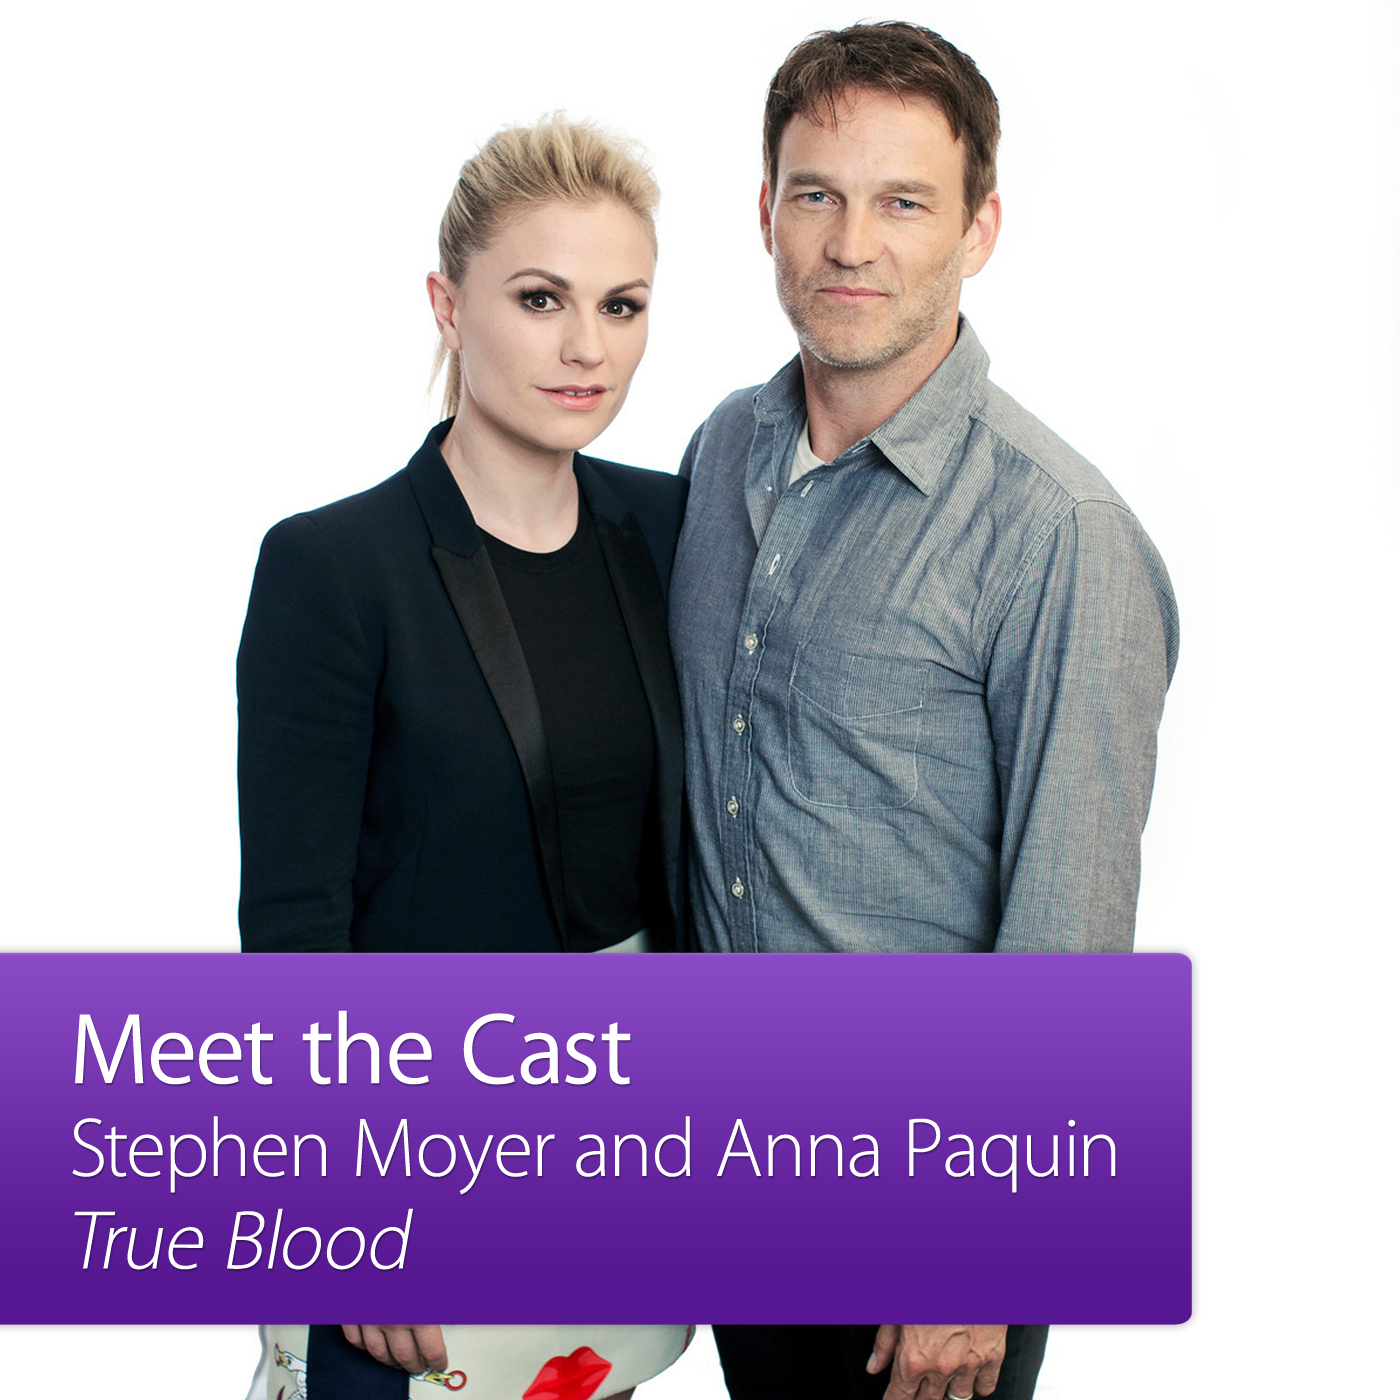 True Blood: Meet the Cast